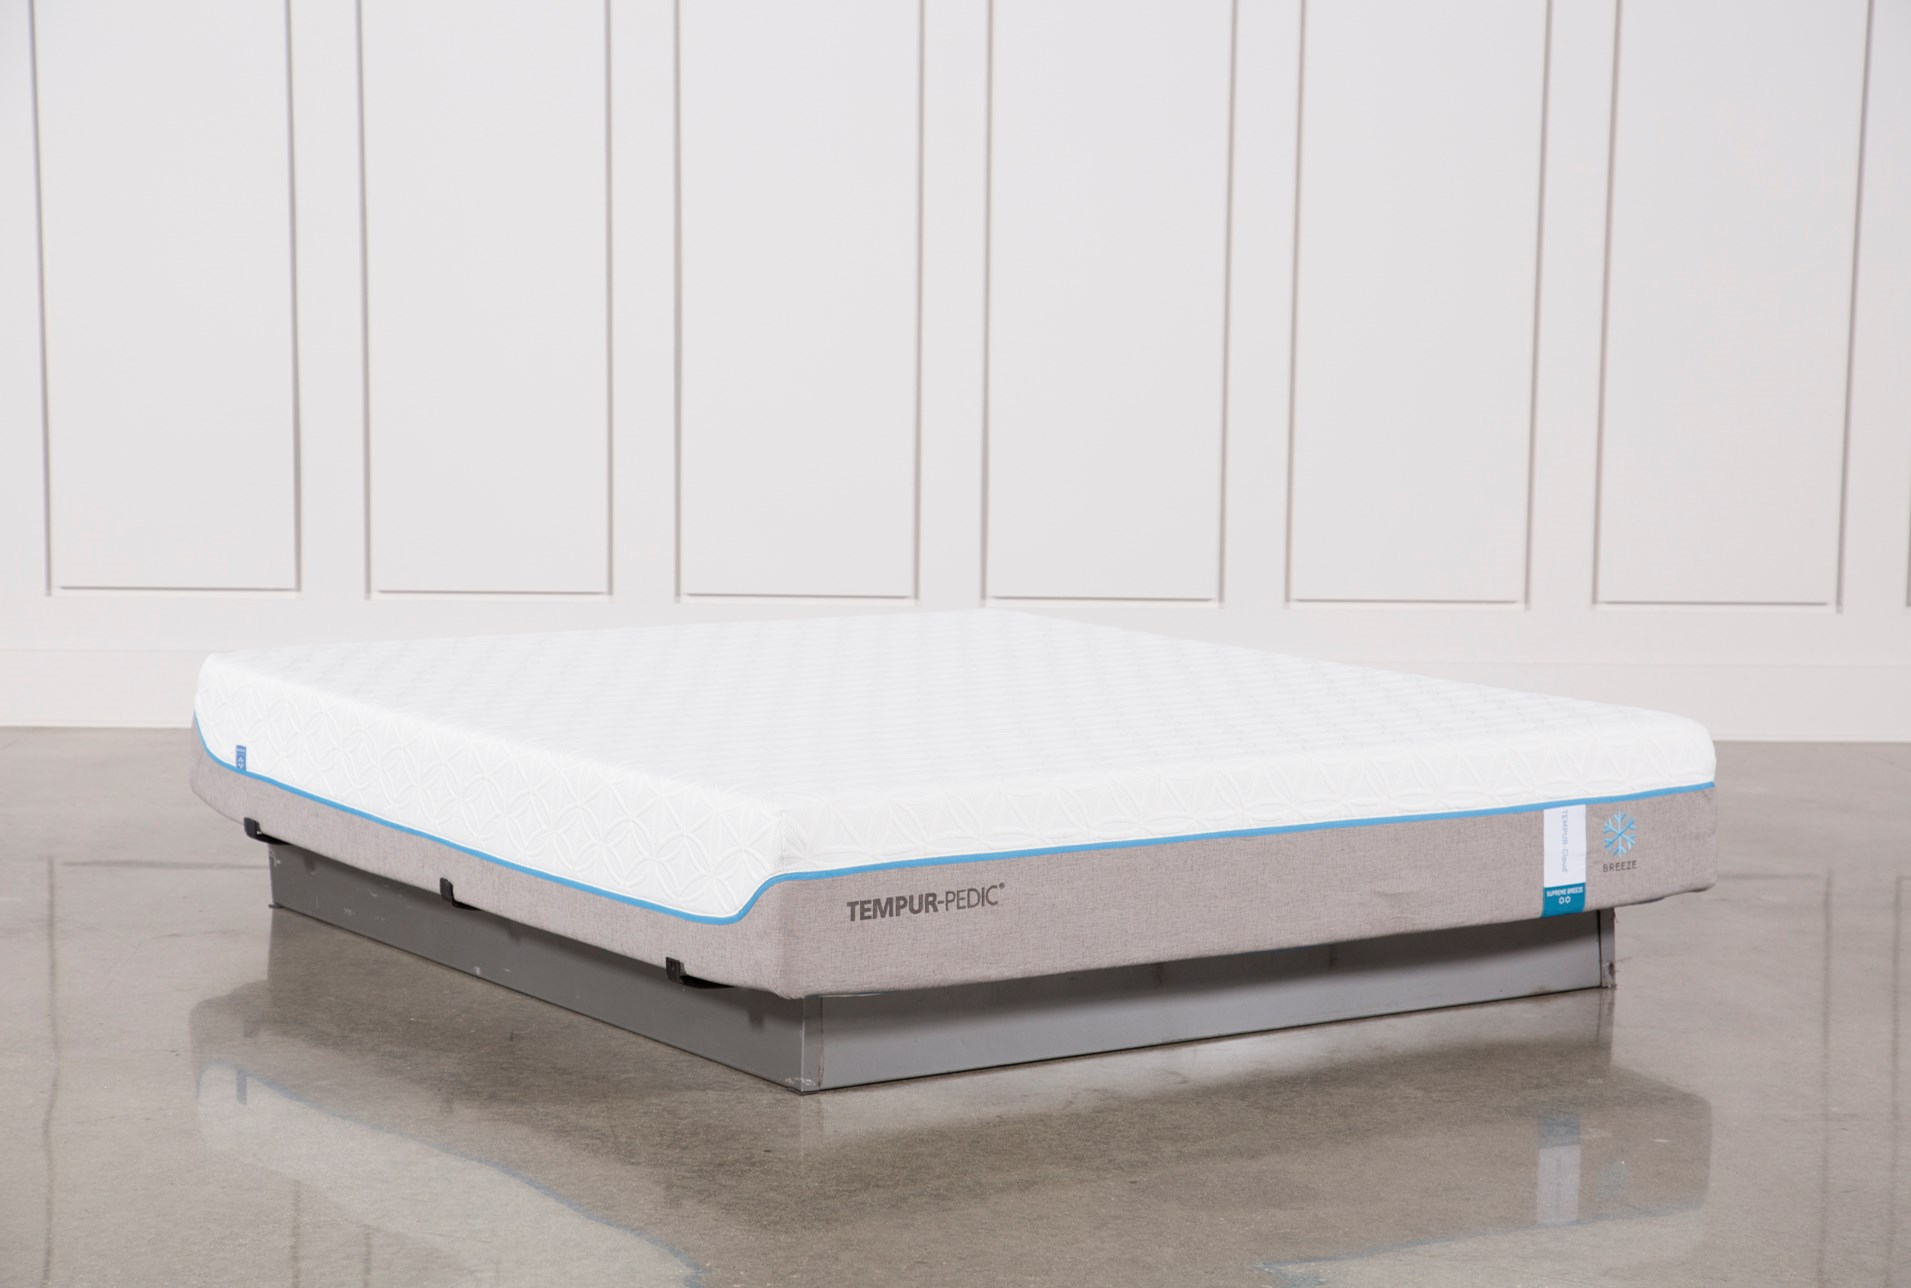 Tempur Pedic Cloud Supreme Breeze 2 0 California King Mattress Qty 1 Has Been Successfully Added To Your Cart